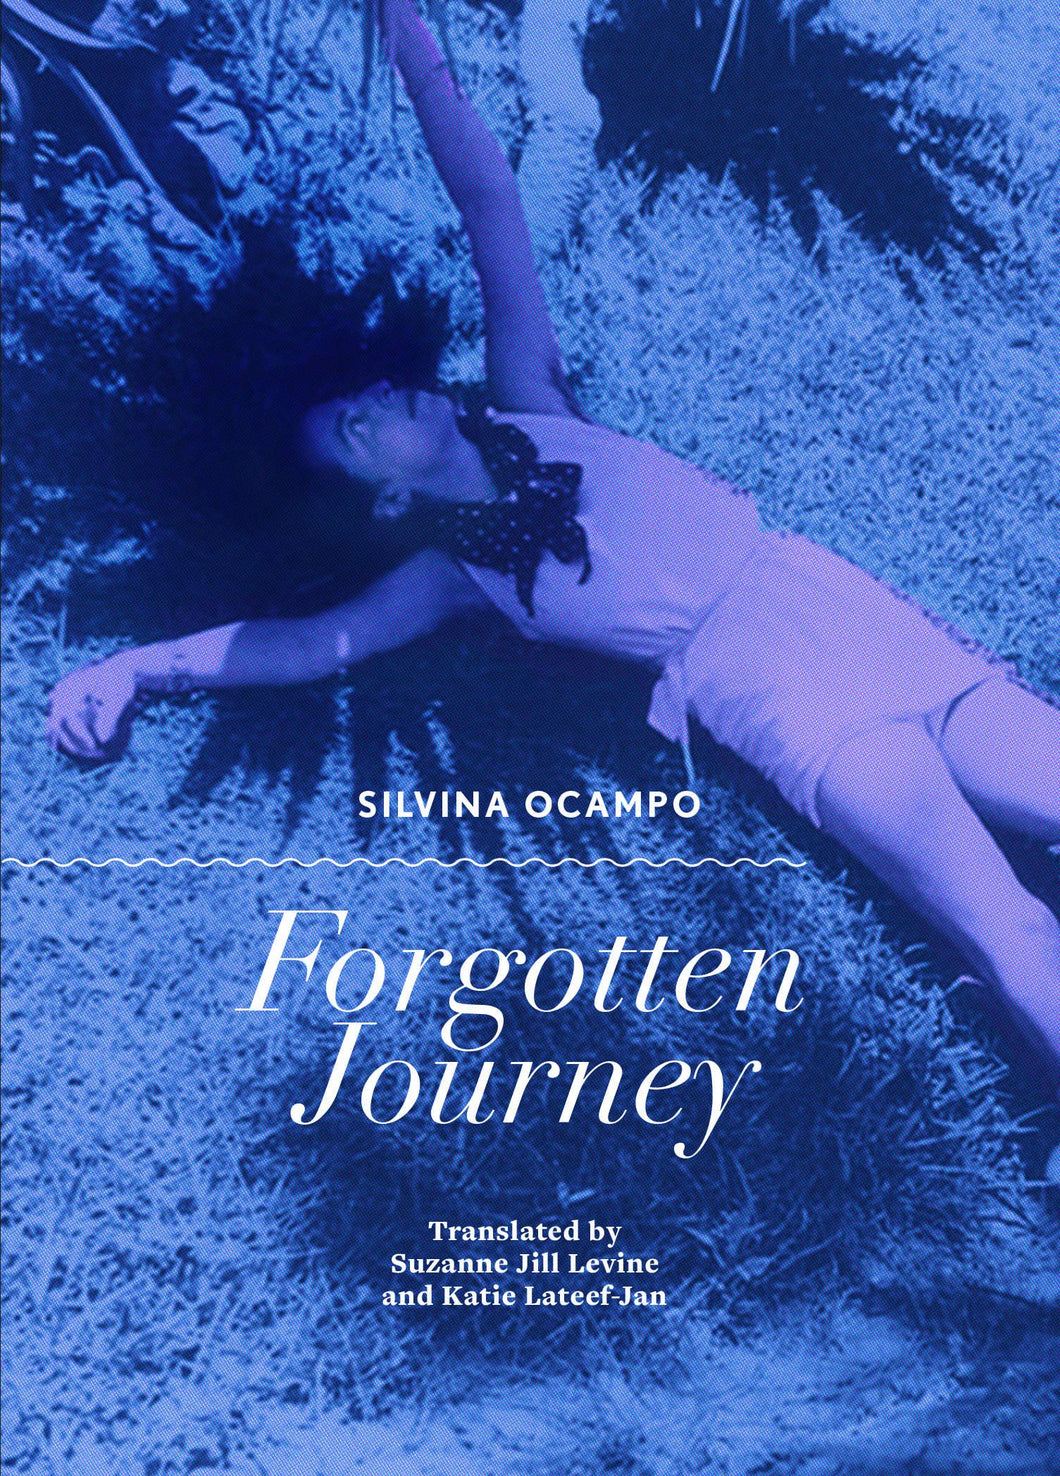 Forgotten Journey by Silvina Ocampo